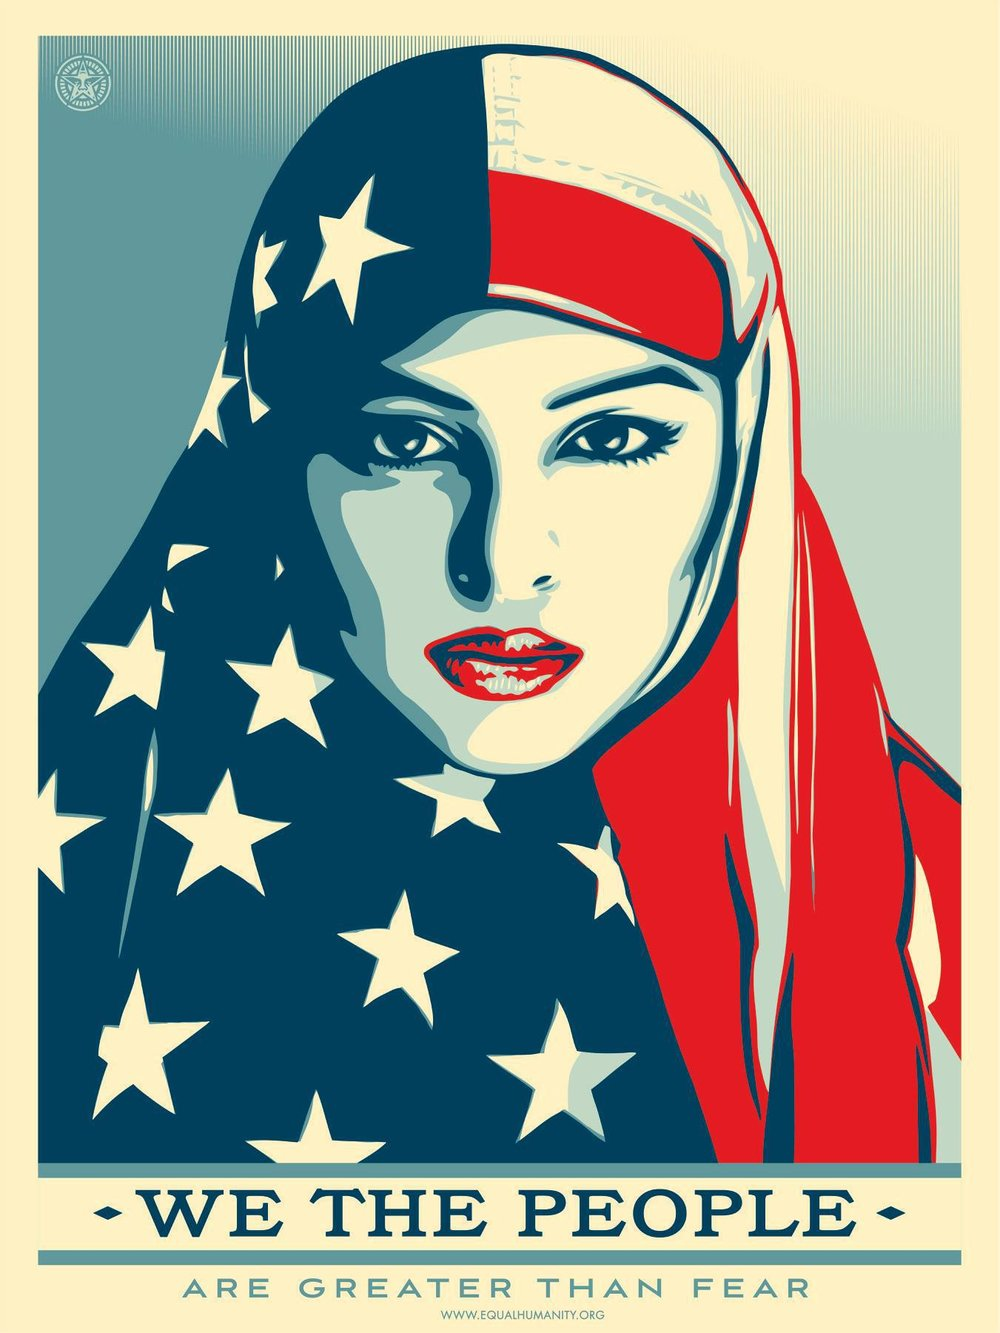 SHEPARD FAIREY: GREATER THAN FEAR